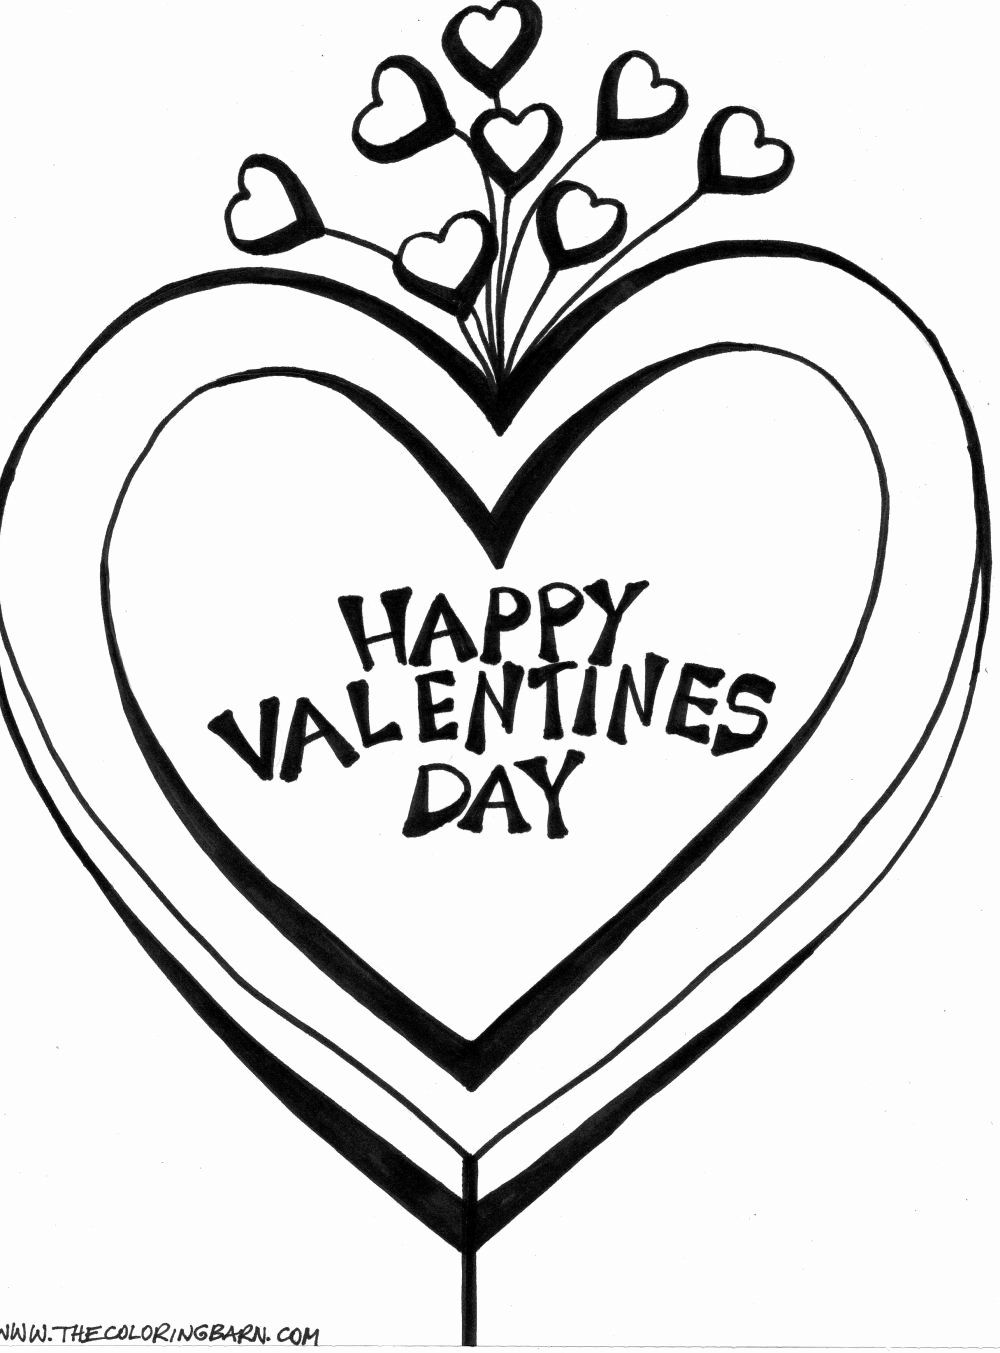 Pin By Sasha Midleton On Valentines Yard Art Valentines Day Coloring Page Valentine Coloring Pages Heart Coloring Pages